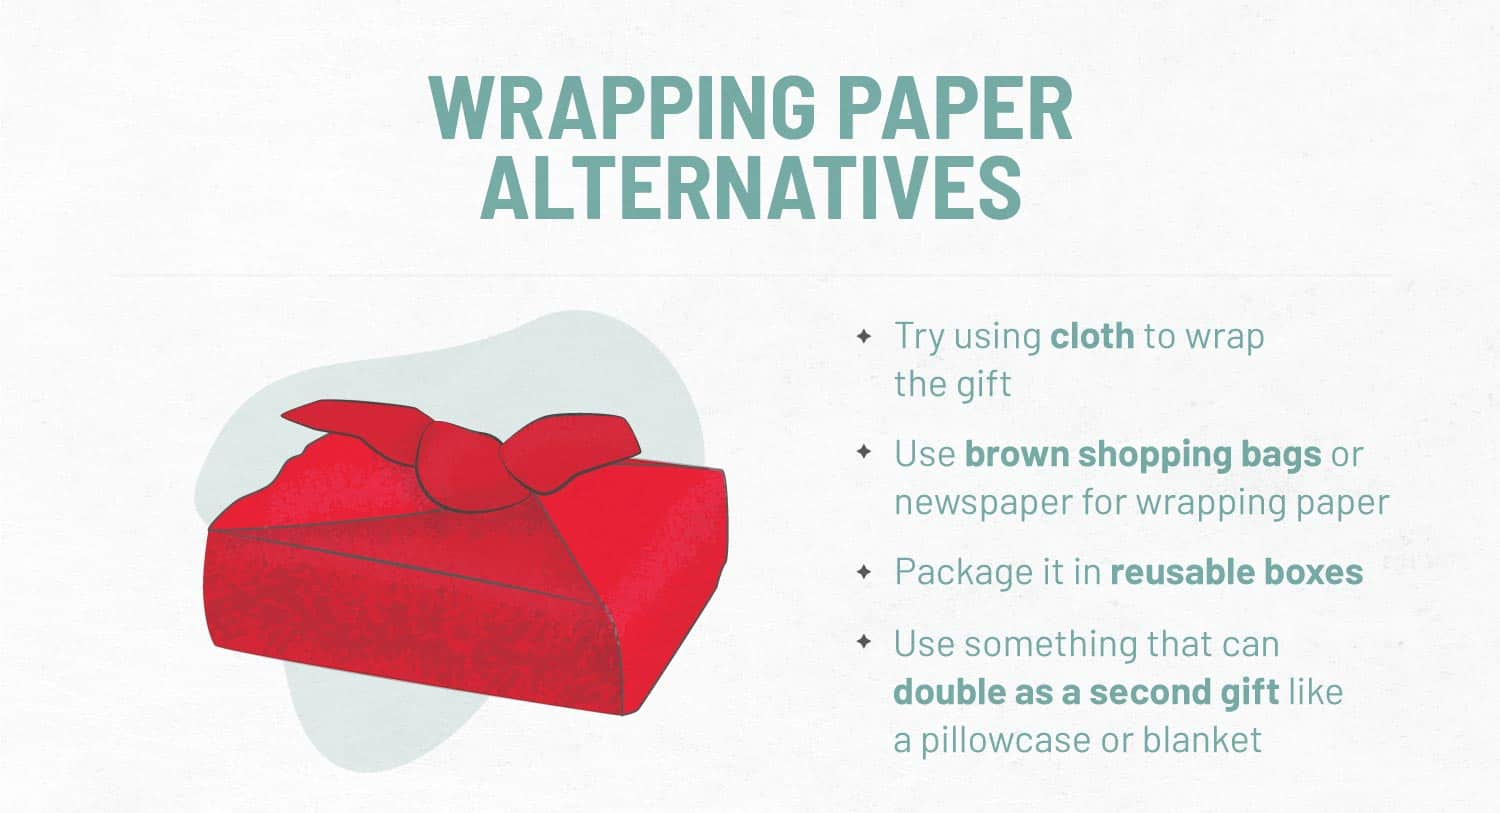 graphic that shows wrapping paper alternatives